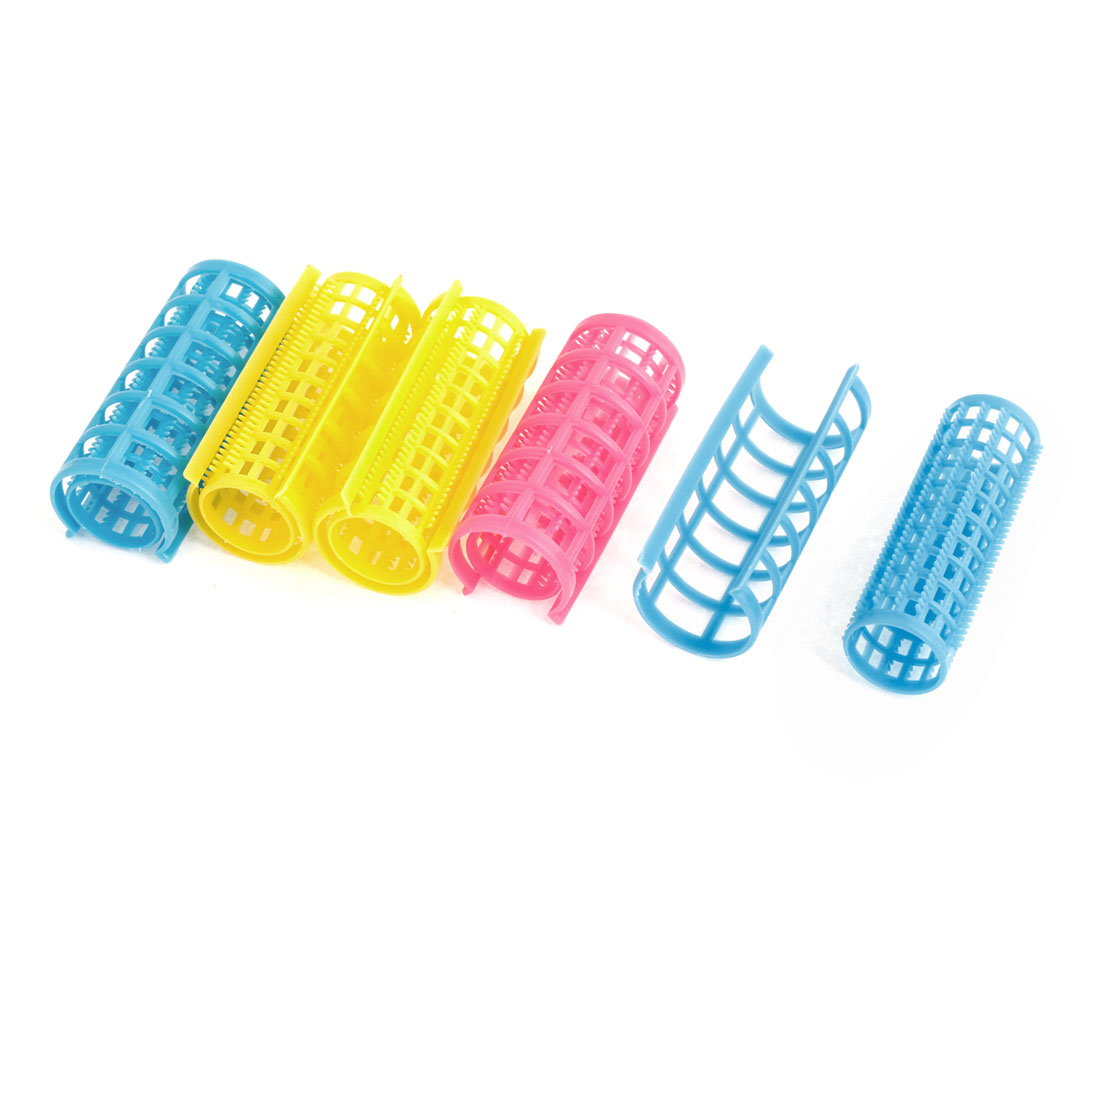 Lady DIY Hairstyle Plastic Hair Curlers Rollers Clips 5 Pcs